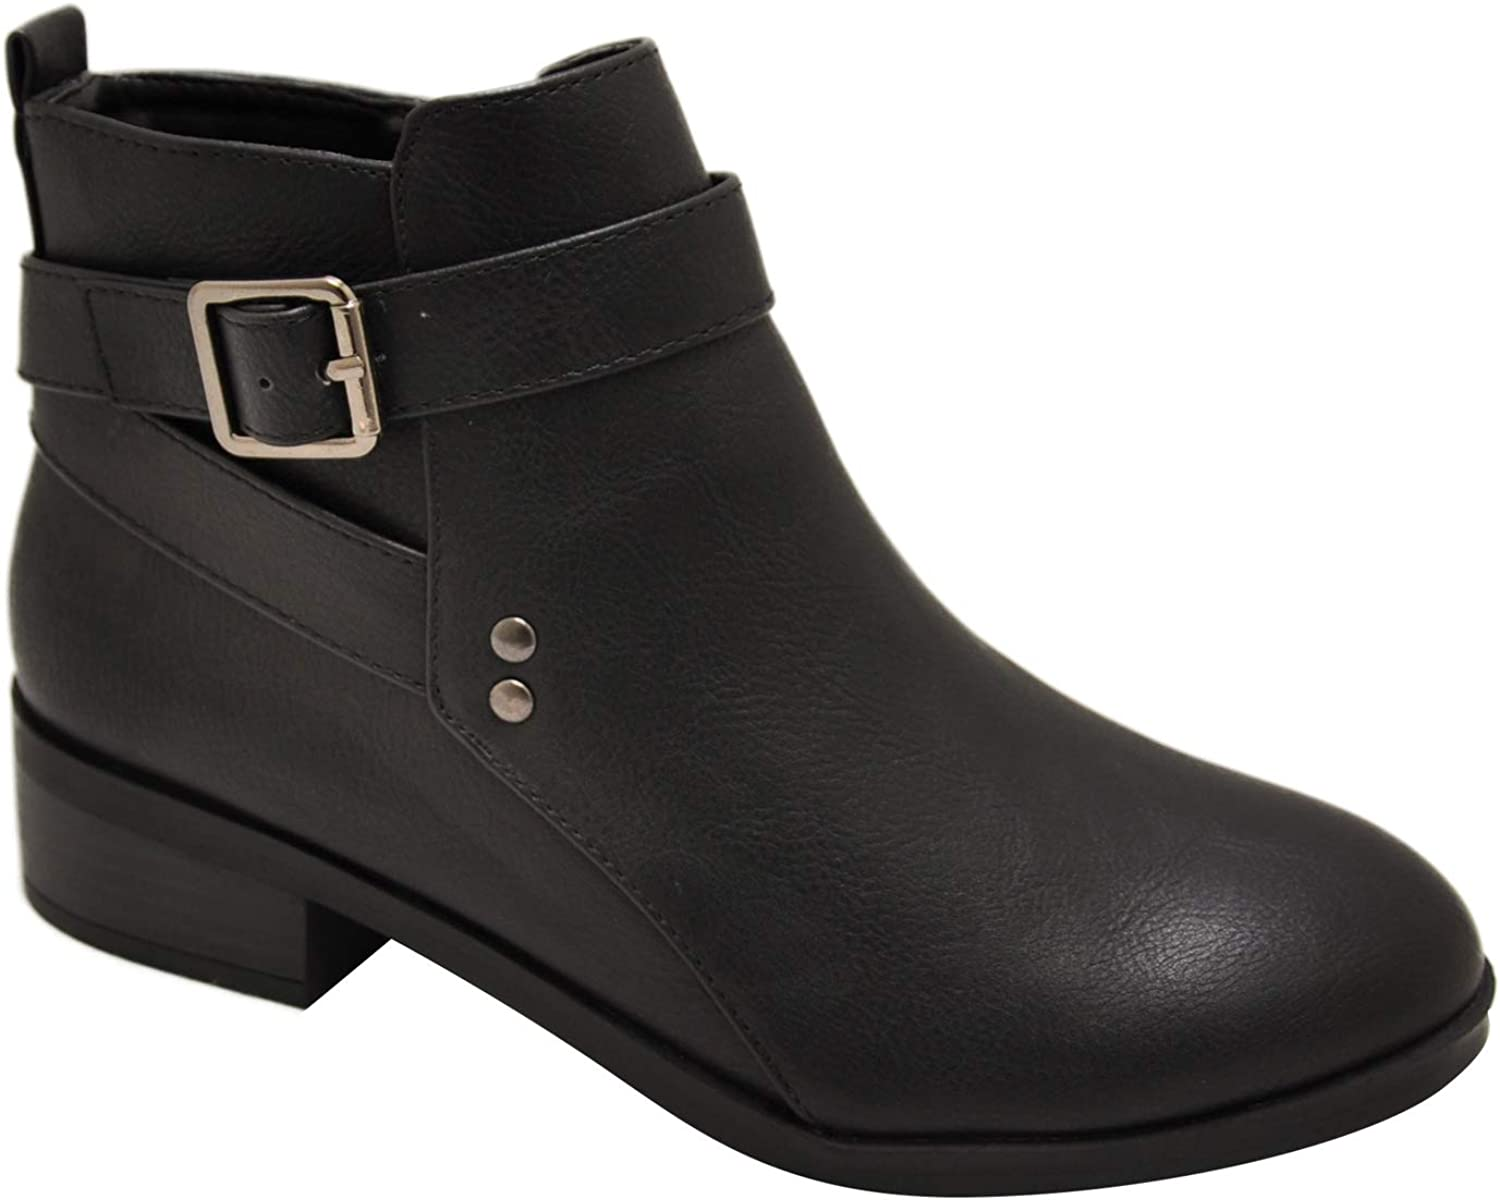 City Classified Catch-S Women's Buckle Strap Ankle Booties